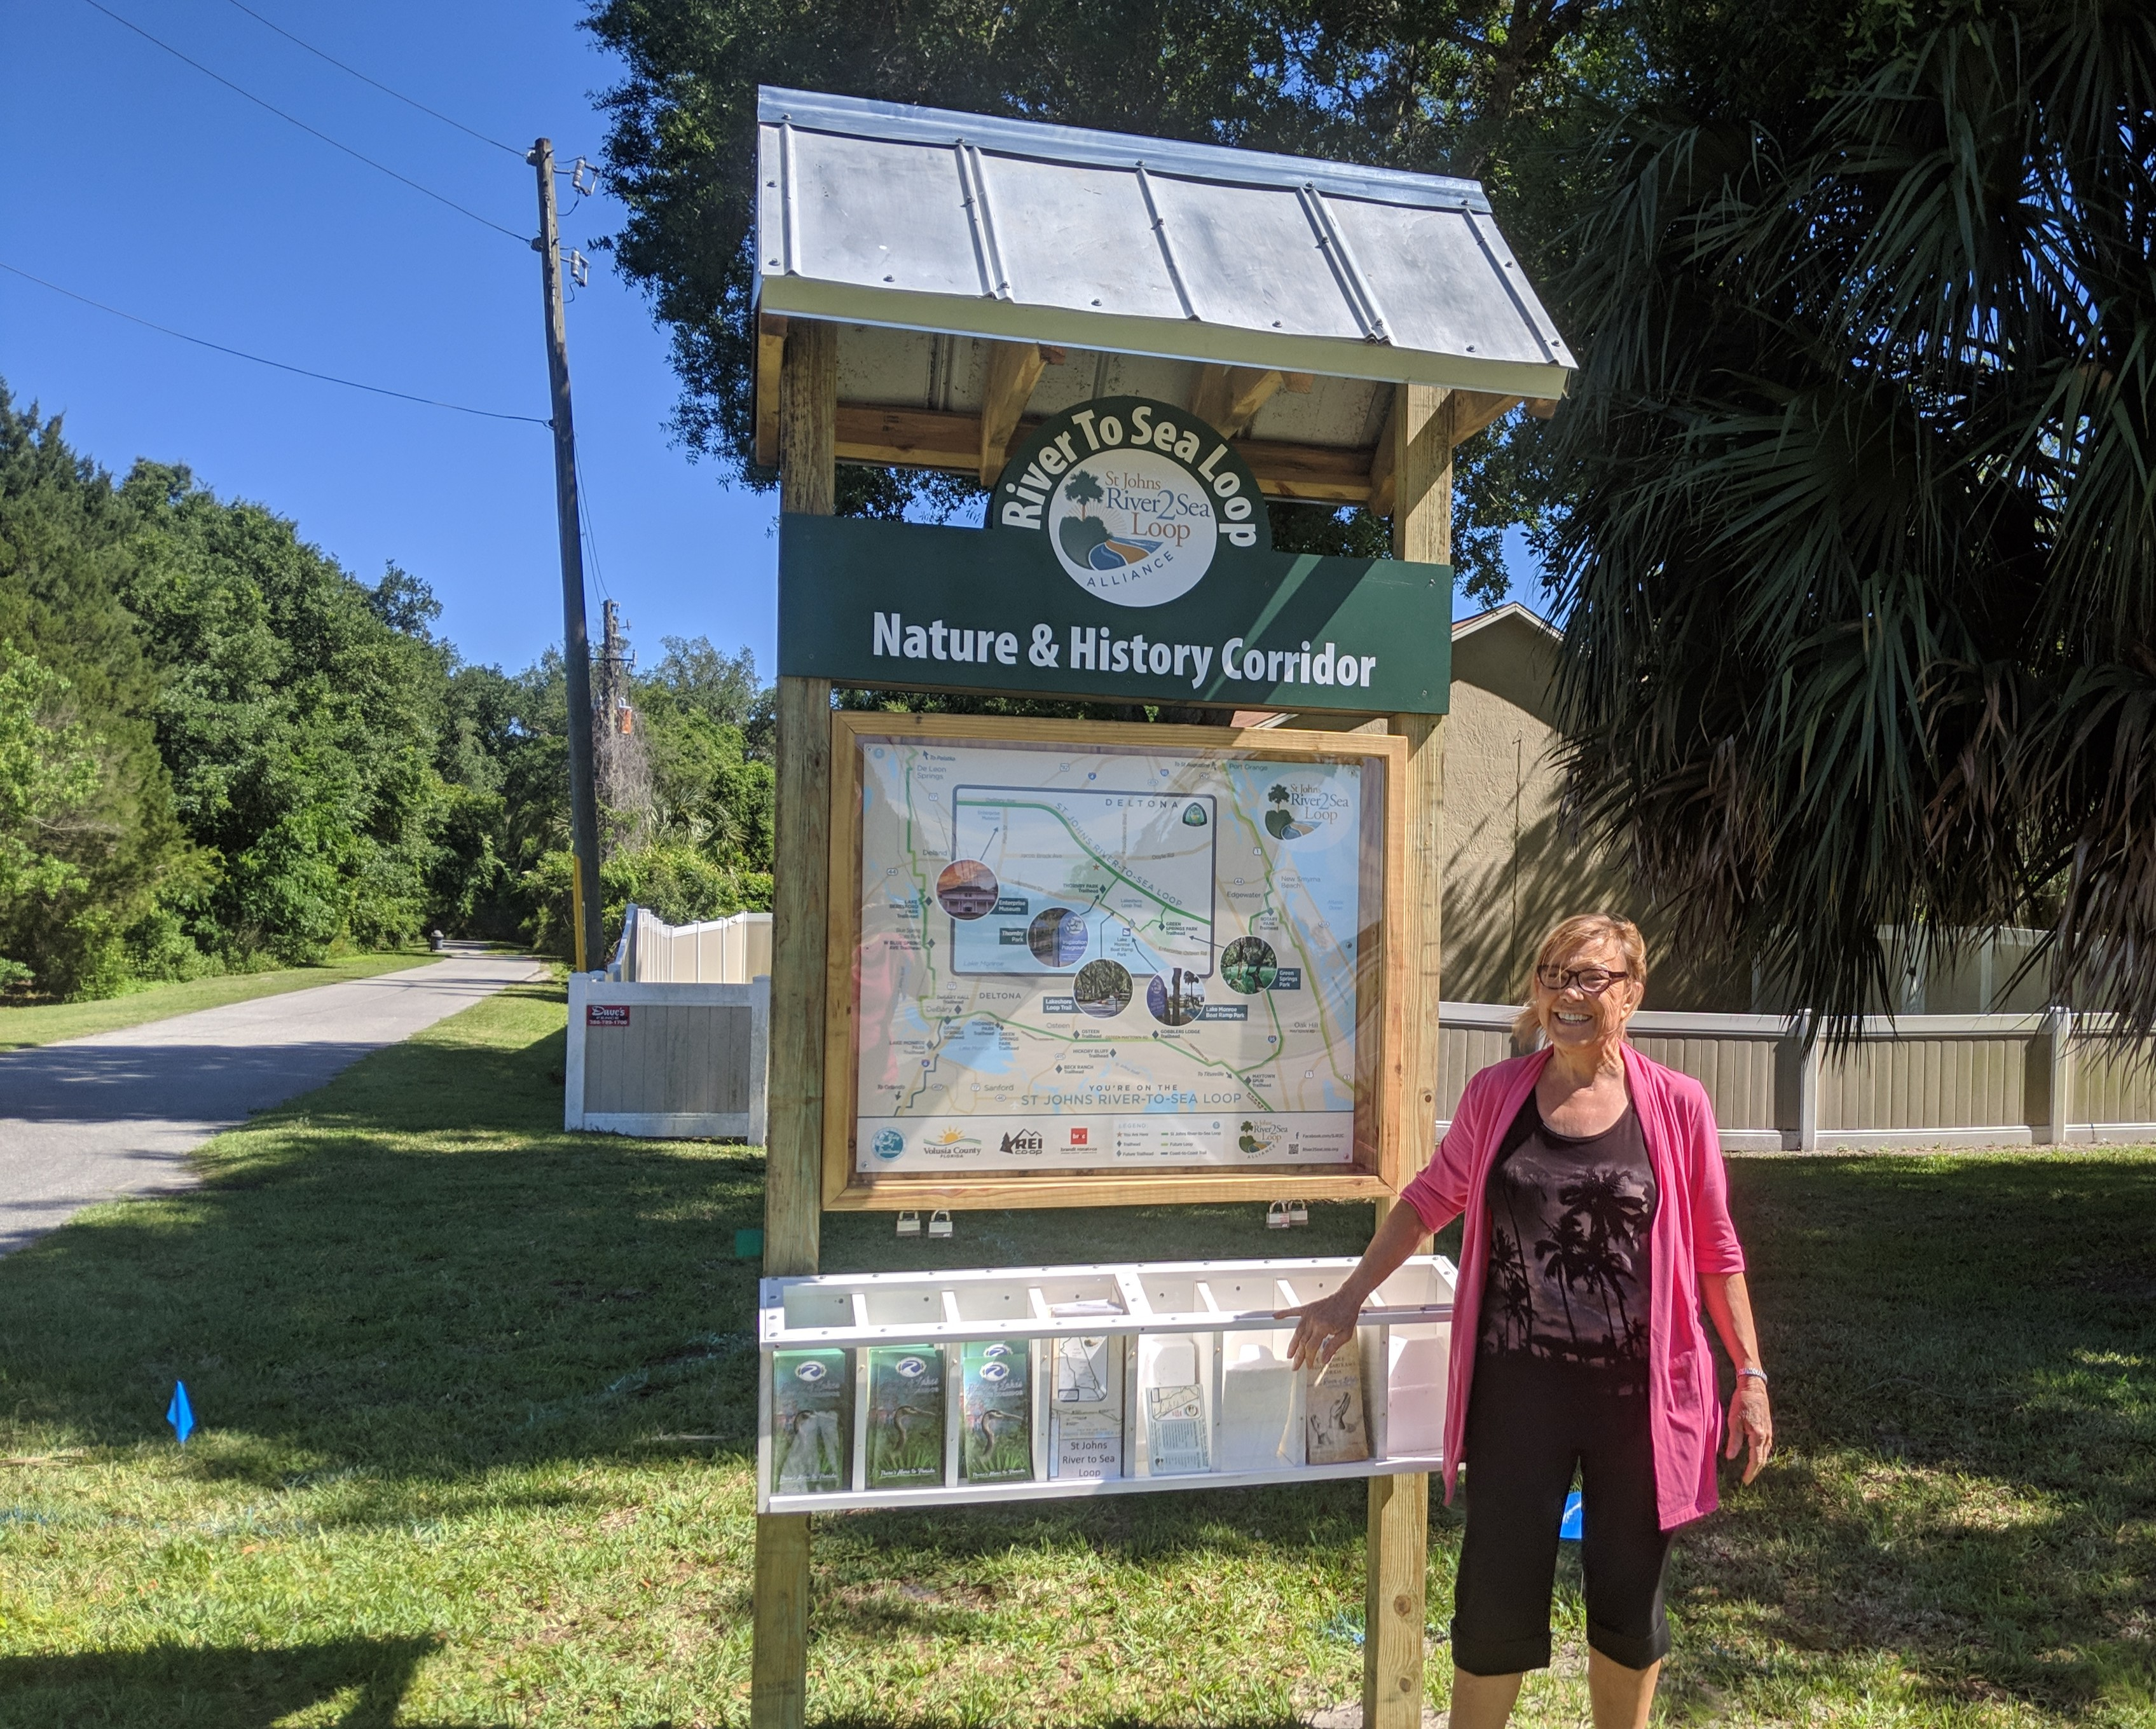 Home | St Johns River-to-Sea Loop Alliance